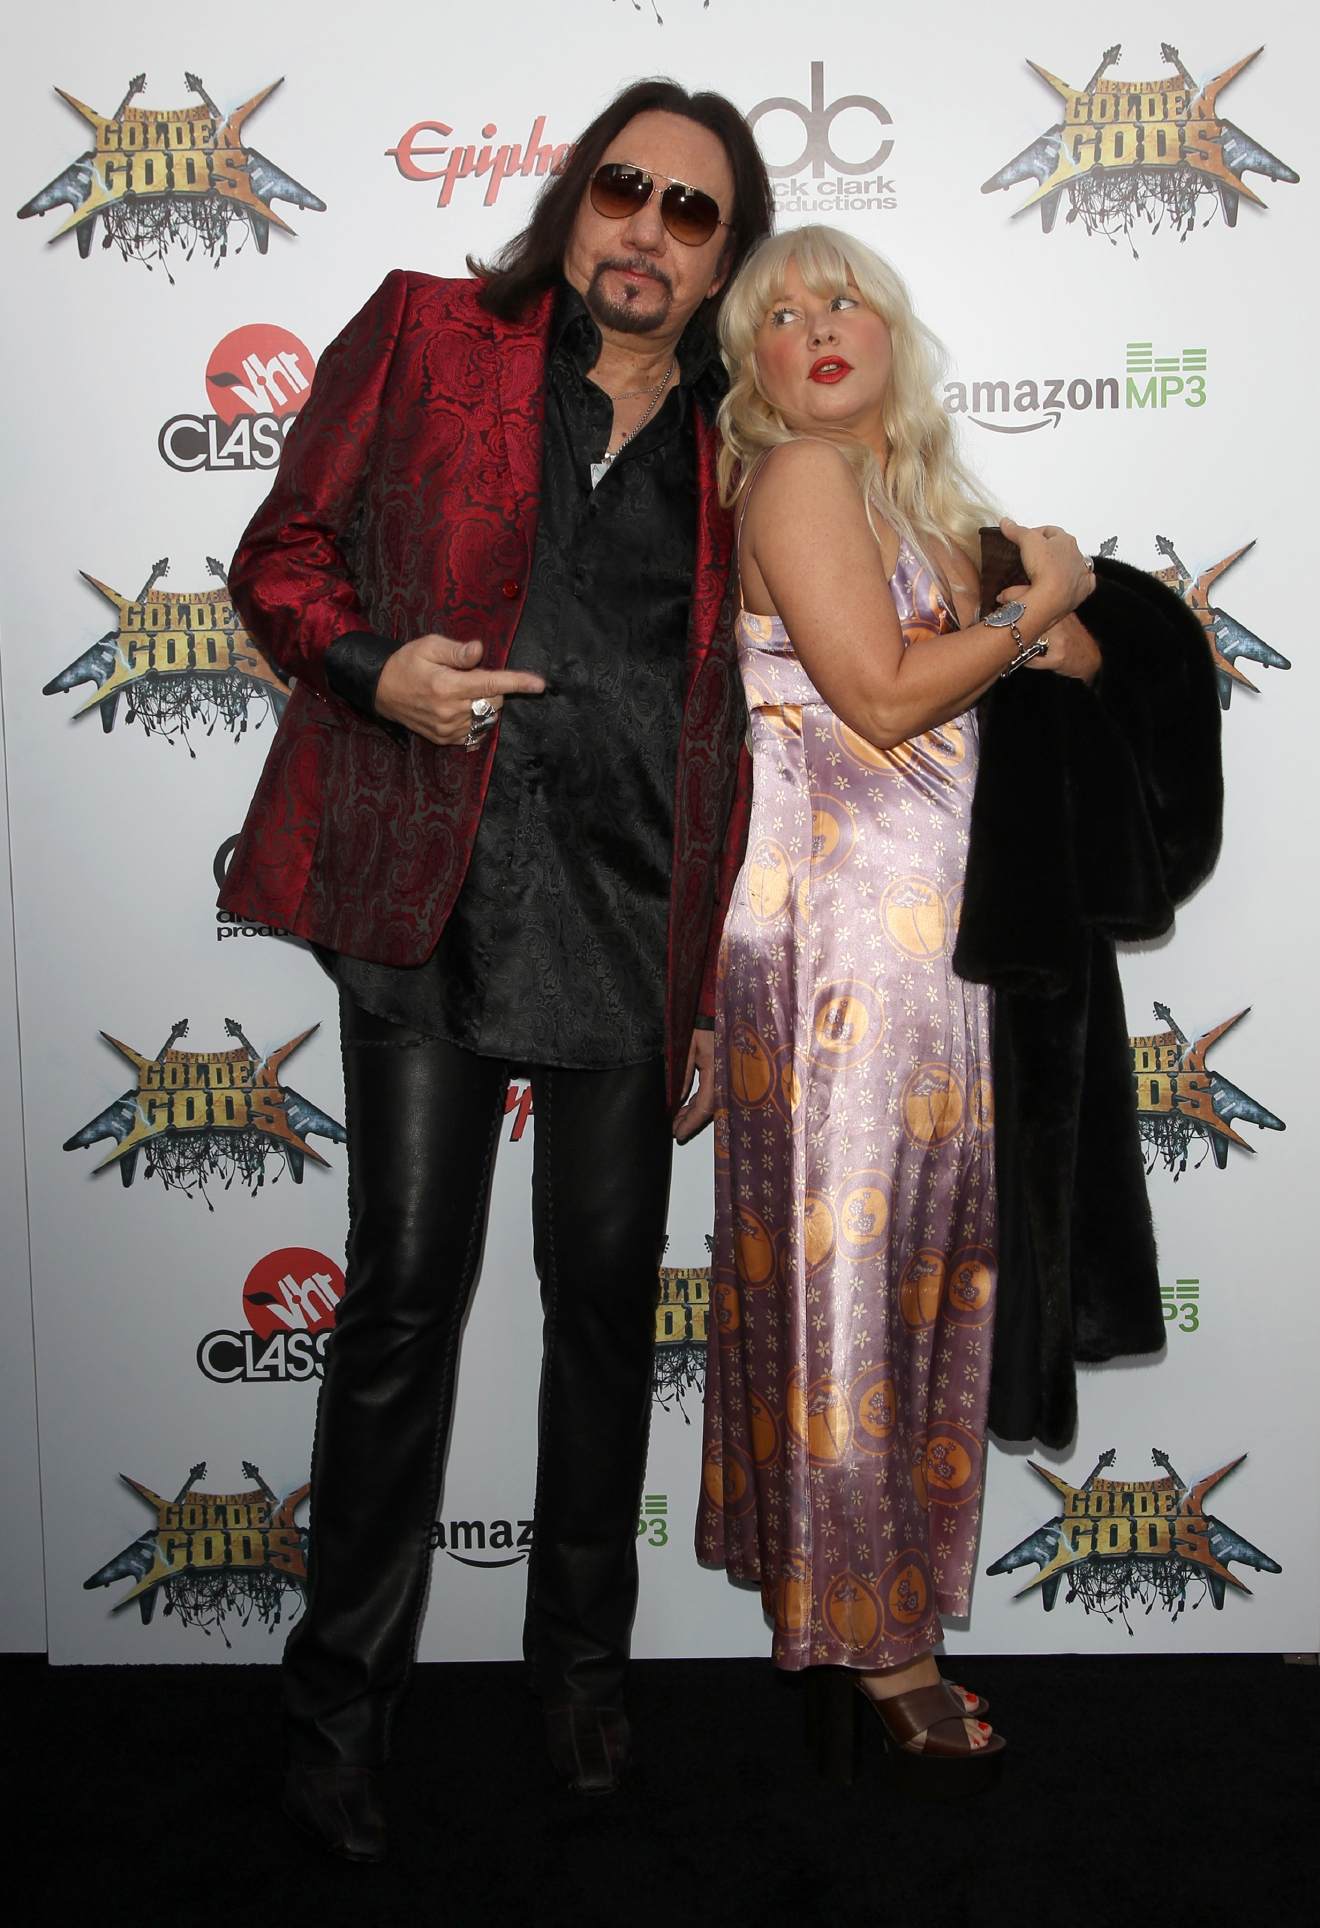 2014 Revolver Golden Gods Award Show  Featuring: Ace Frehley,Guest Where: Los Angeles, California, United States When: 23 Apr 2014 Credit: FayesVision/WENN.com